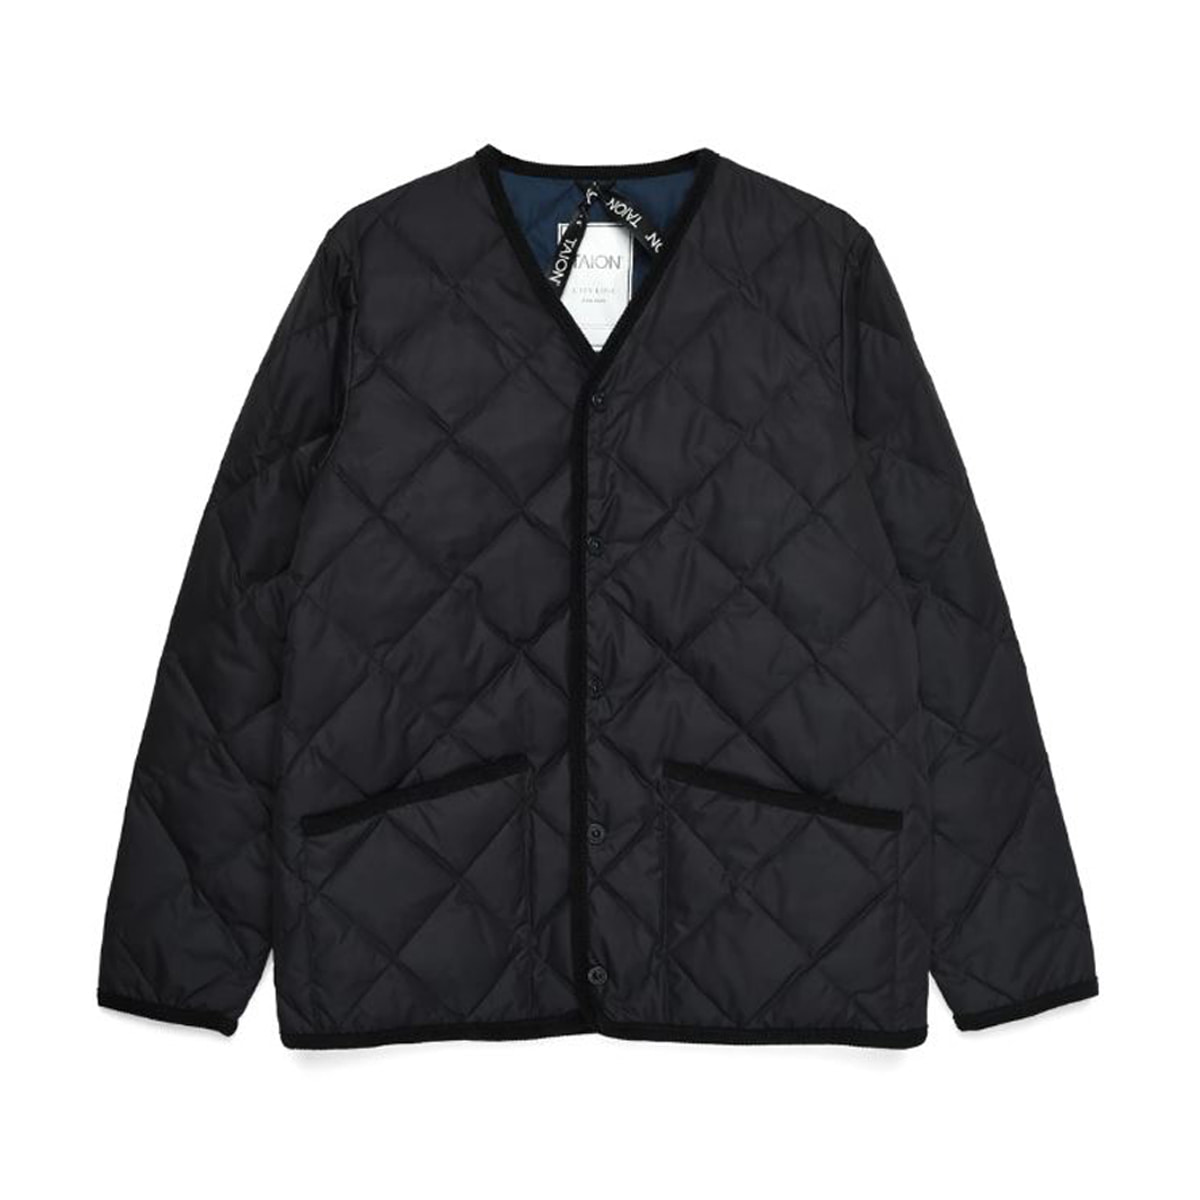 [TAION] PIPING V NECK DOWN CARDIGAN (TAION-101CI) 'BLACK'